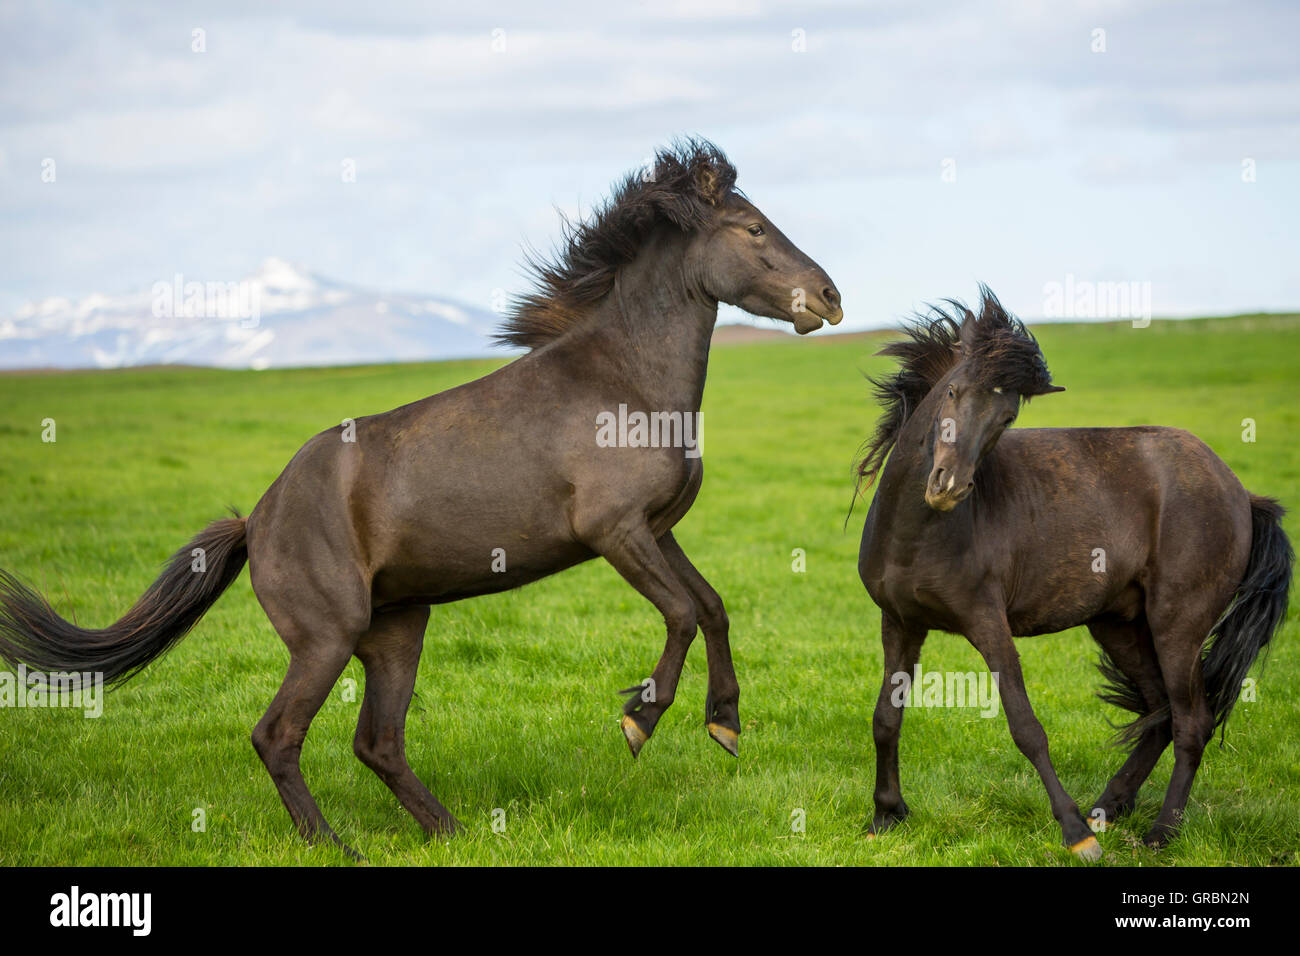 Icelandic horses Iceland, South West Iceland, Golden Circle tour, Evolved from ponies taken to Iceland in the 9th - Stock Image